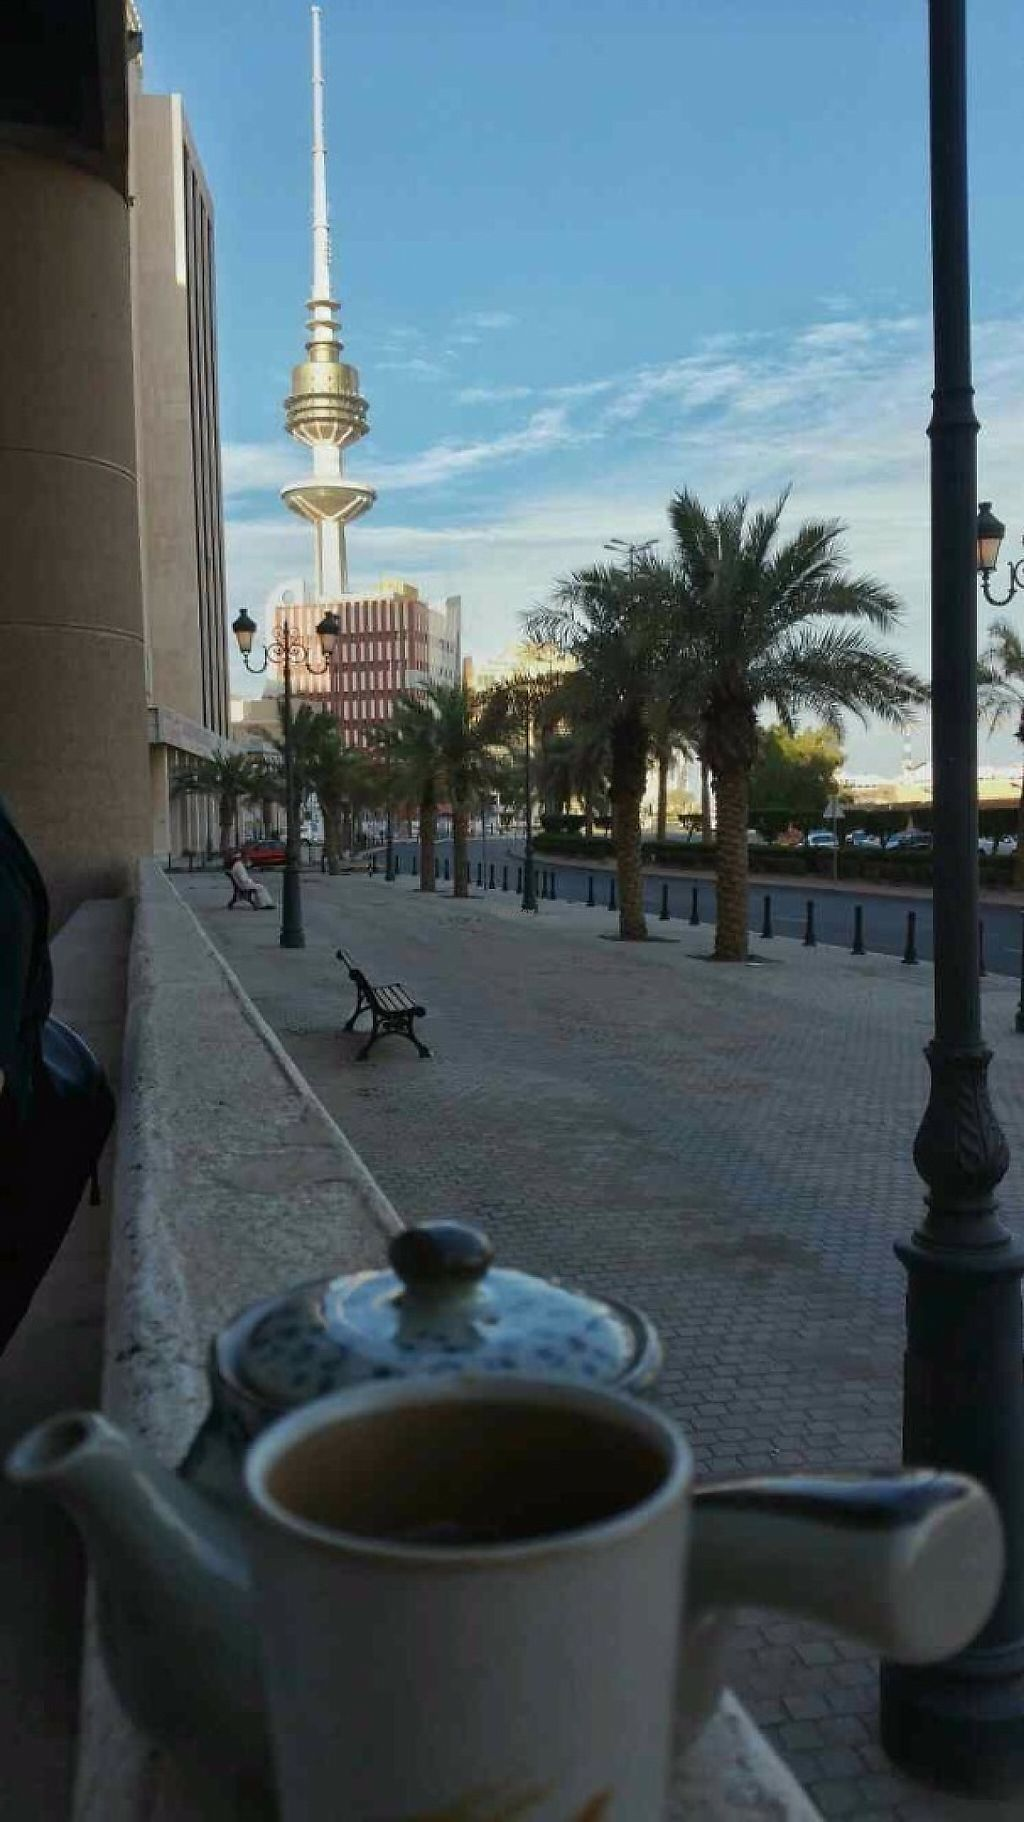 """Photo of Ginger Restaurant  by <a href=""""/members/profile/Yasumi"""">Yasumi</a> <br/>While there are no outdoor tables yet, you can still enjoy a view of Kuwait City after your meal on public benches (they're kind enough to bring us our tea outside)  <br/> January 14, 2017  - <a href='/contact/abuse/image/17673/211852'>Report</a>"""